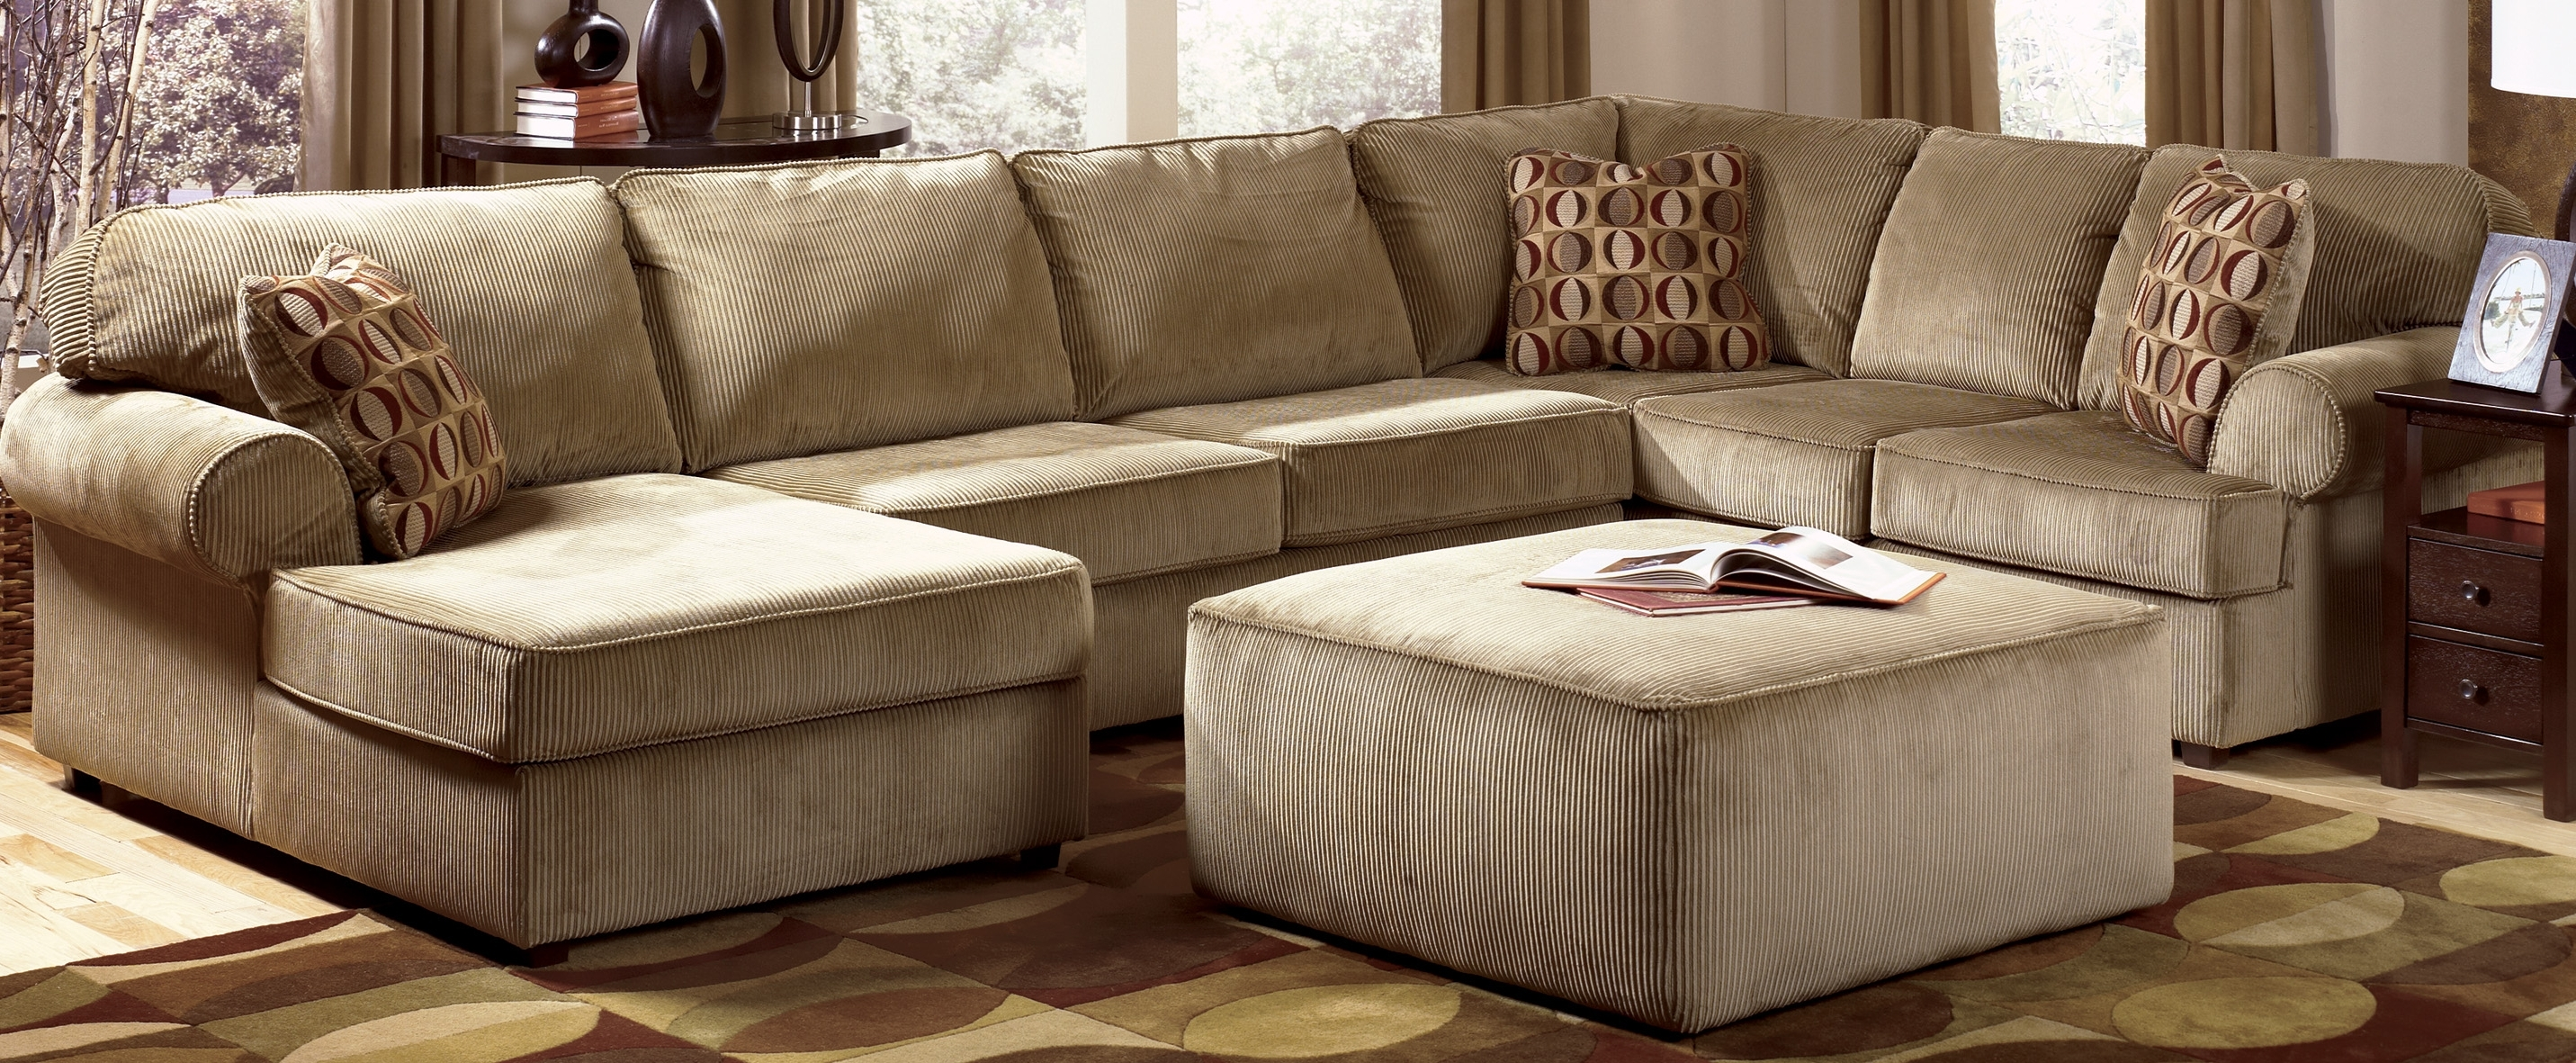 Inexpensive Sectional Sofas For Small Spaces Inside Recent Sofa : Sleep Sofas For Small Spaces Leather Sectionals Rooms To Go (View 9 of 20)